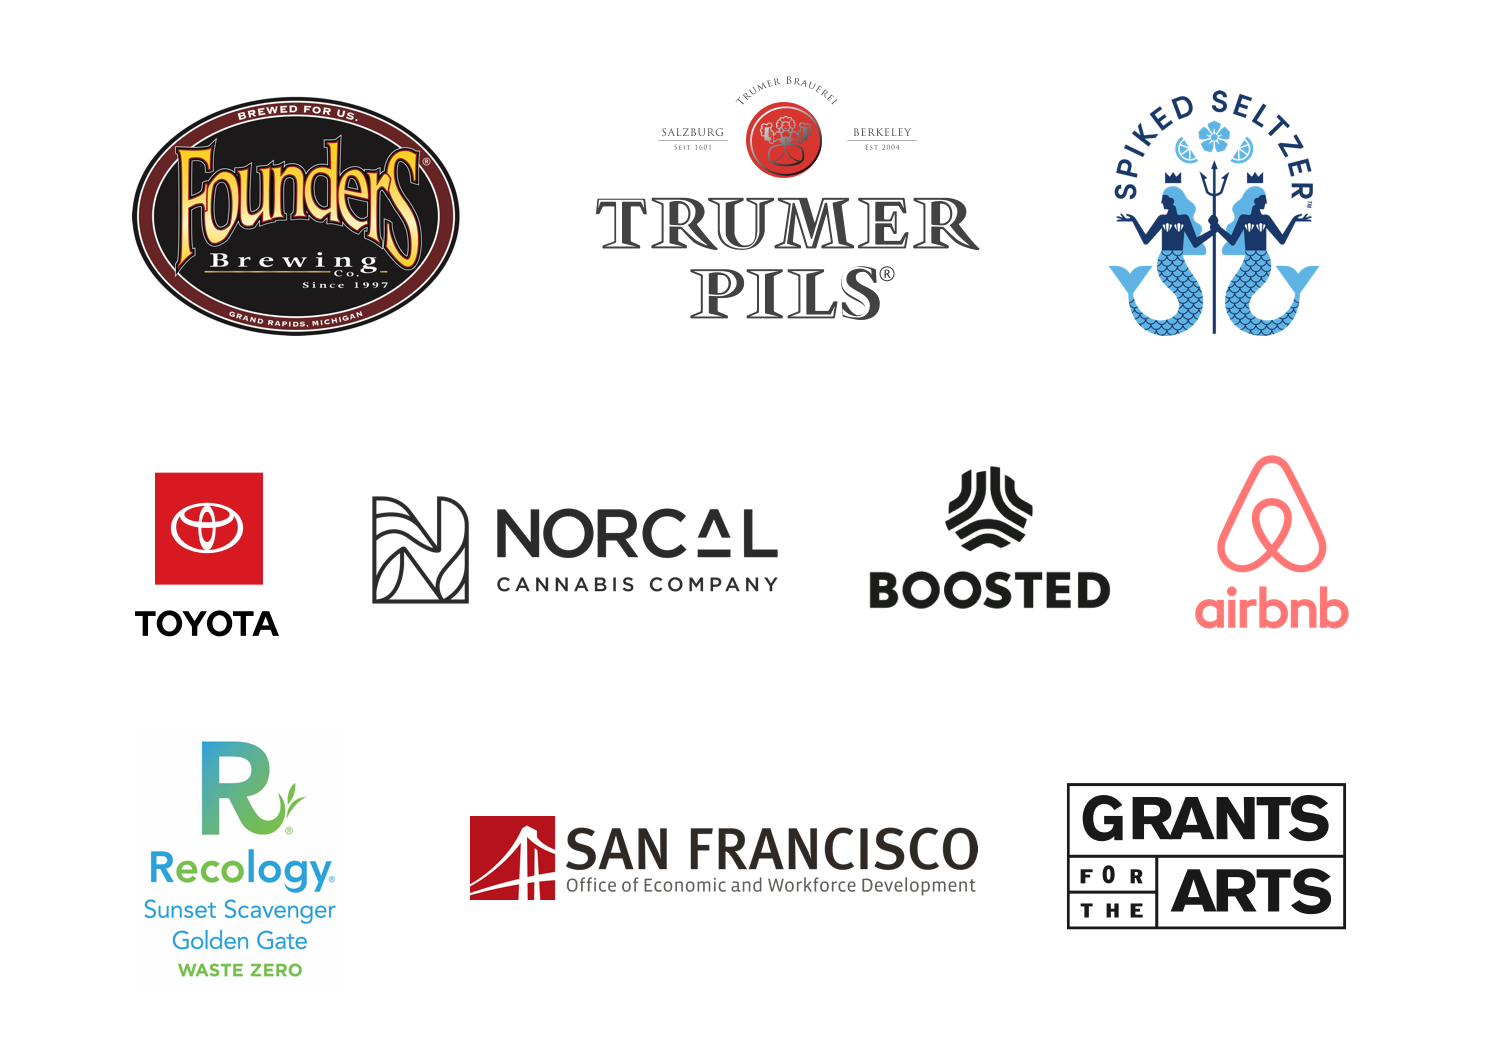 46th Annual Castro Street Fair sponsors: Founders Brewing, Trumer Pils, Spiked Seltzer, Toyota, NorCarl Cannabis Company, Boosted, Airbnb, Recology, SFOEWD, Grants for the Arts